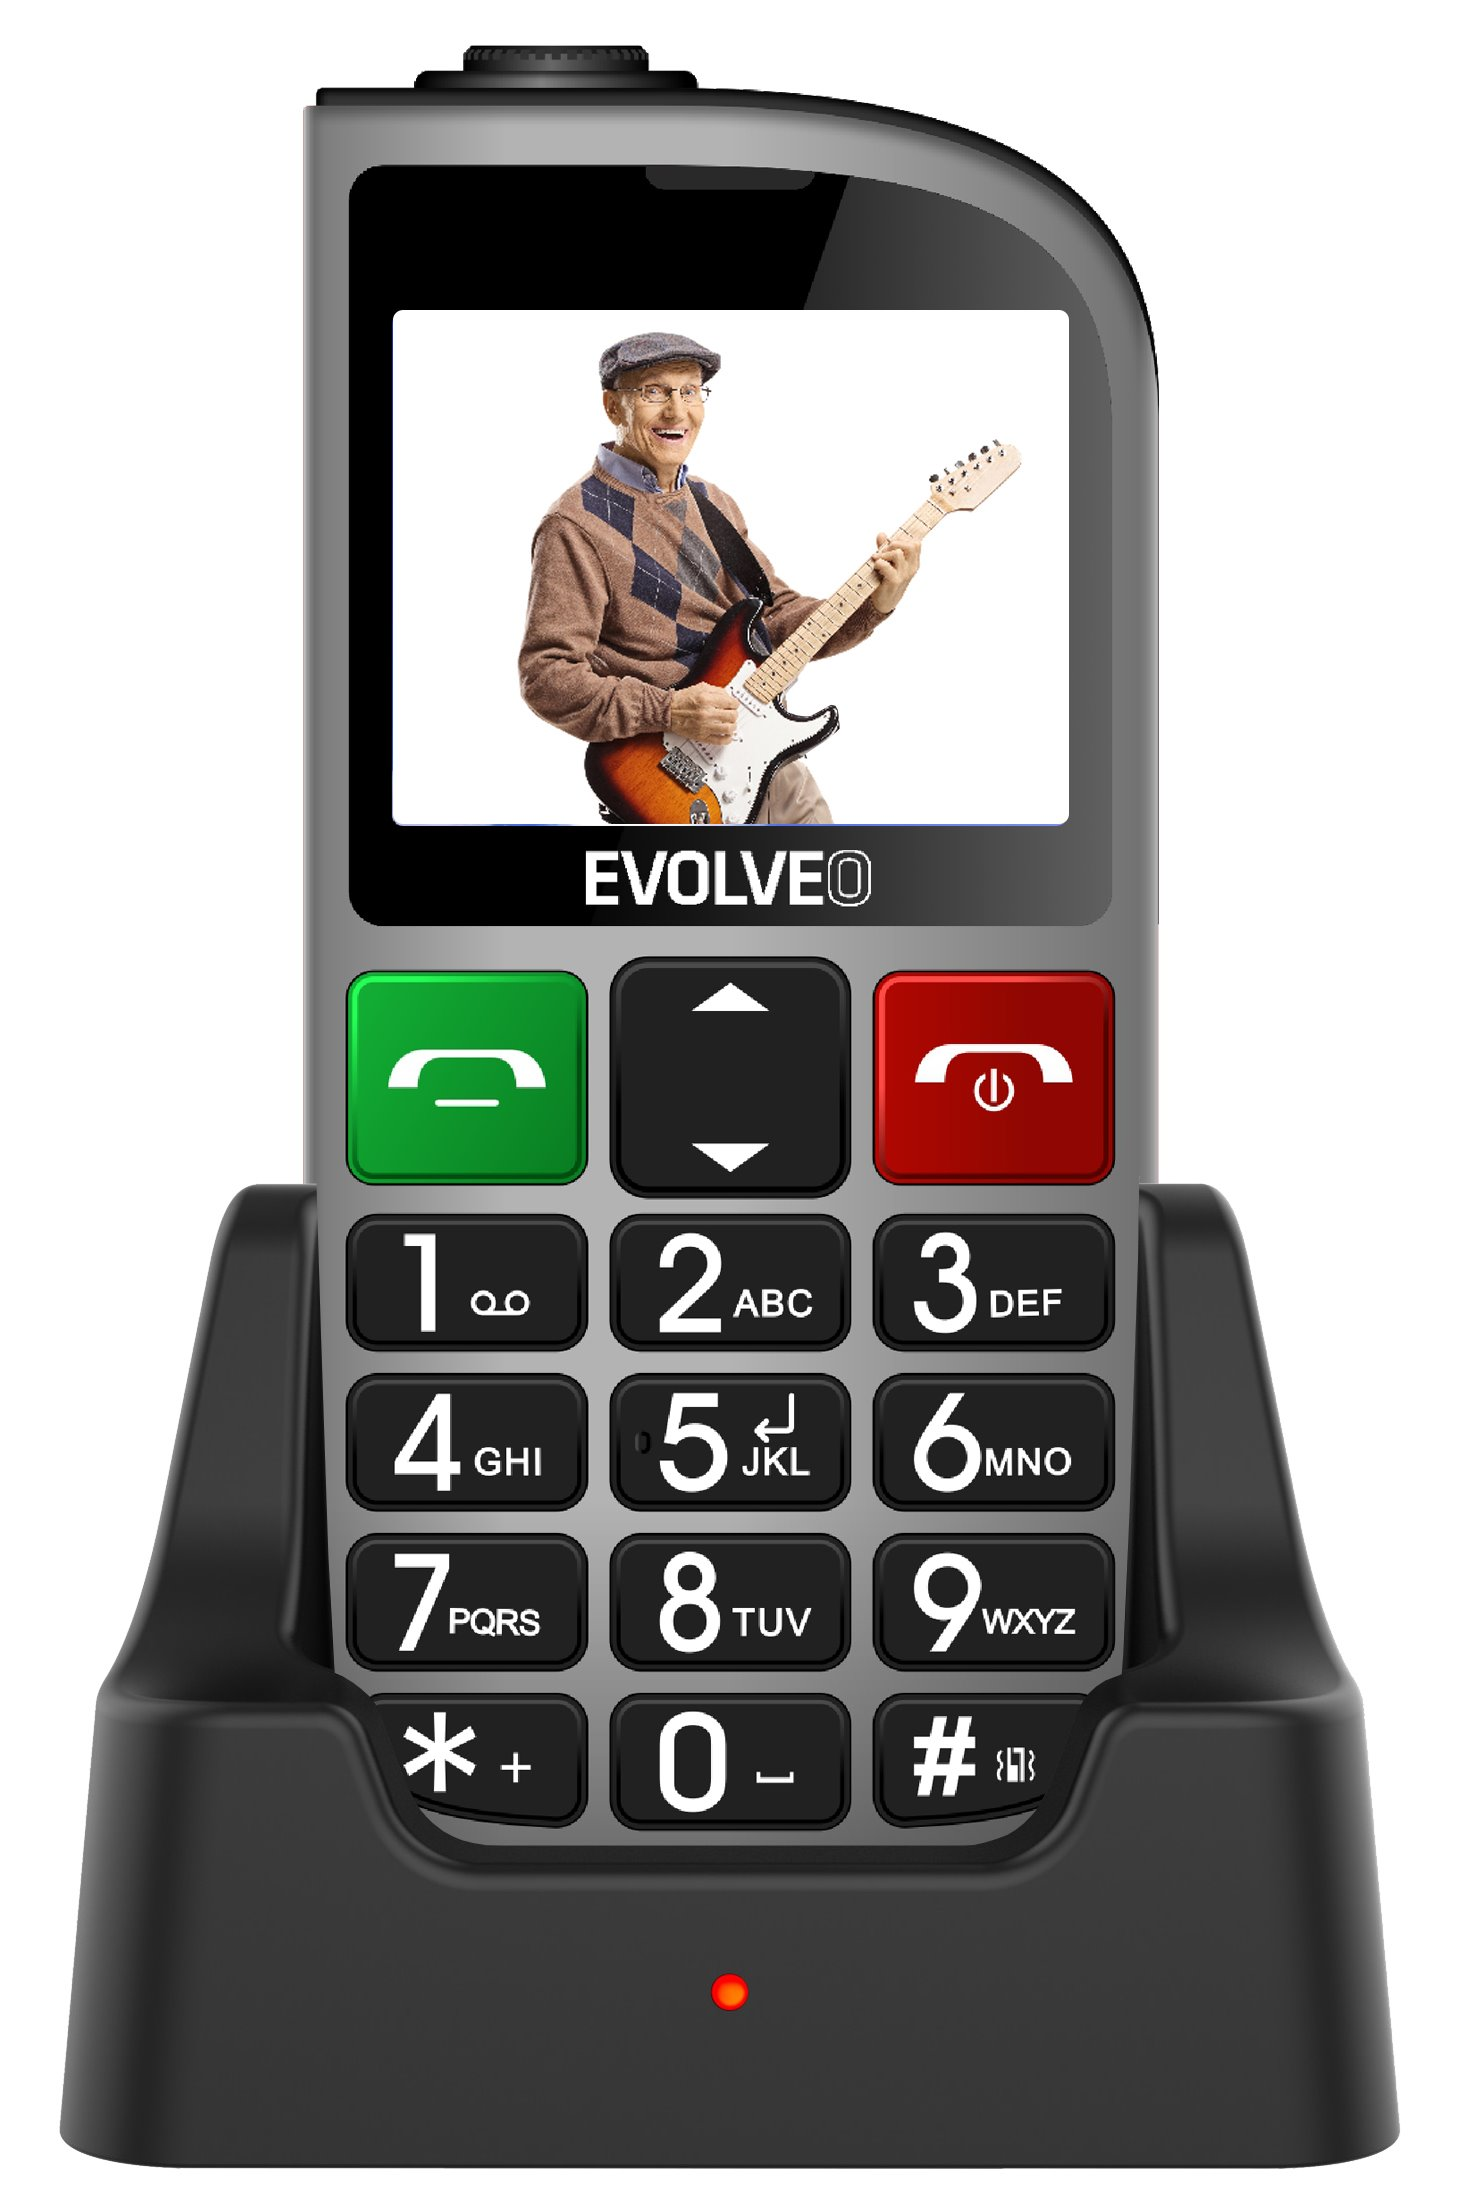 EVOLVEO EasyPhone FM, a mobile phone for senior citizens with a charging stand (silver colour